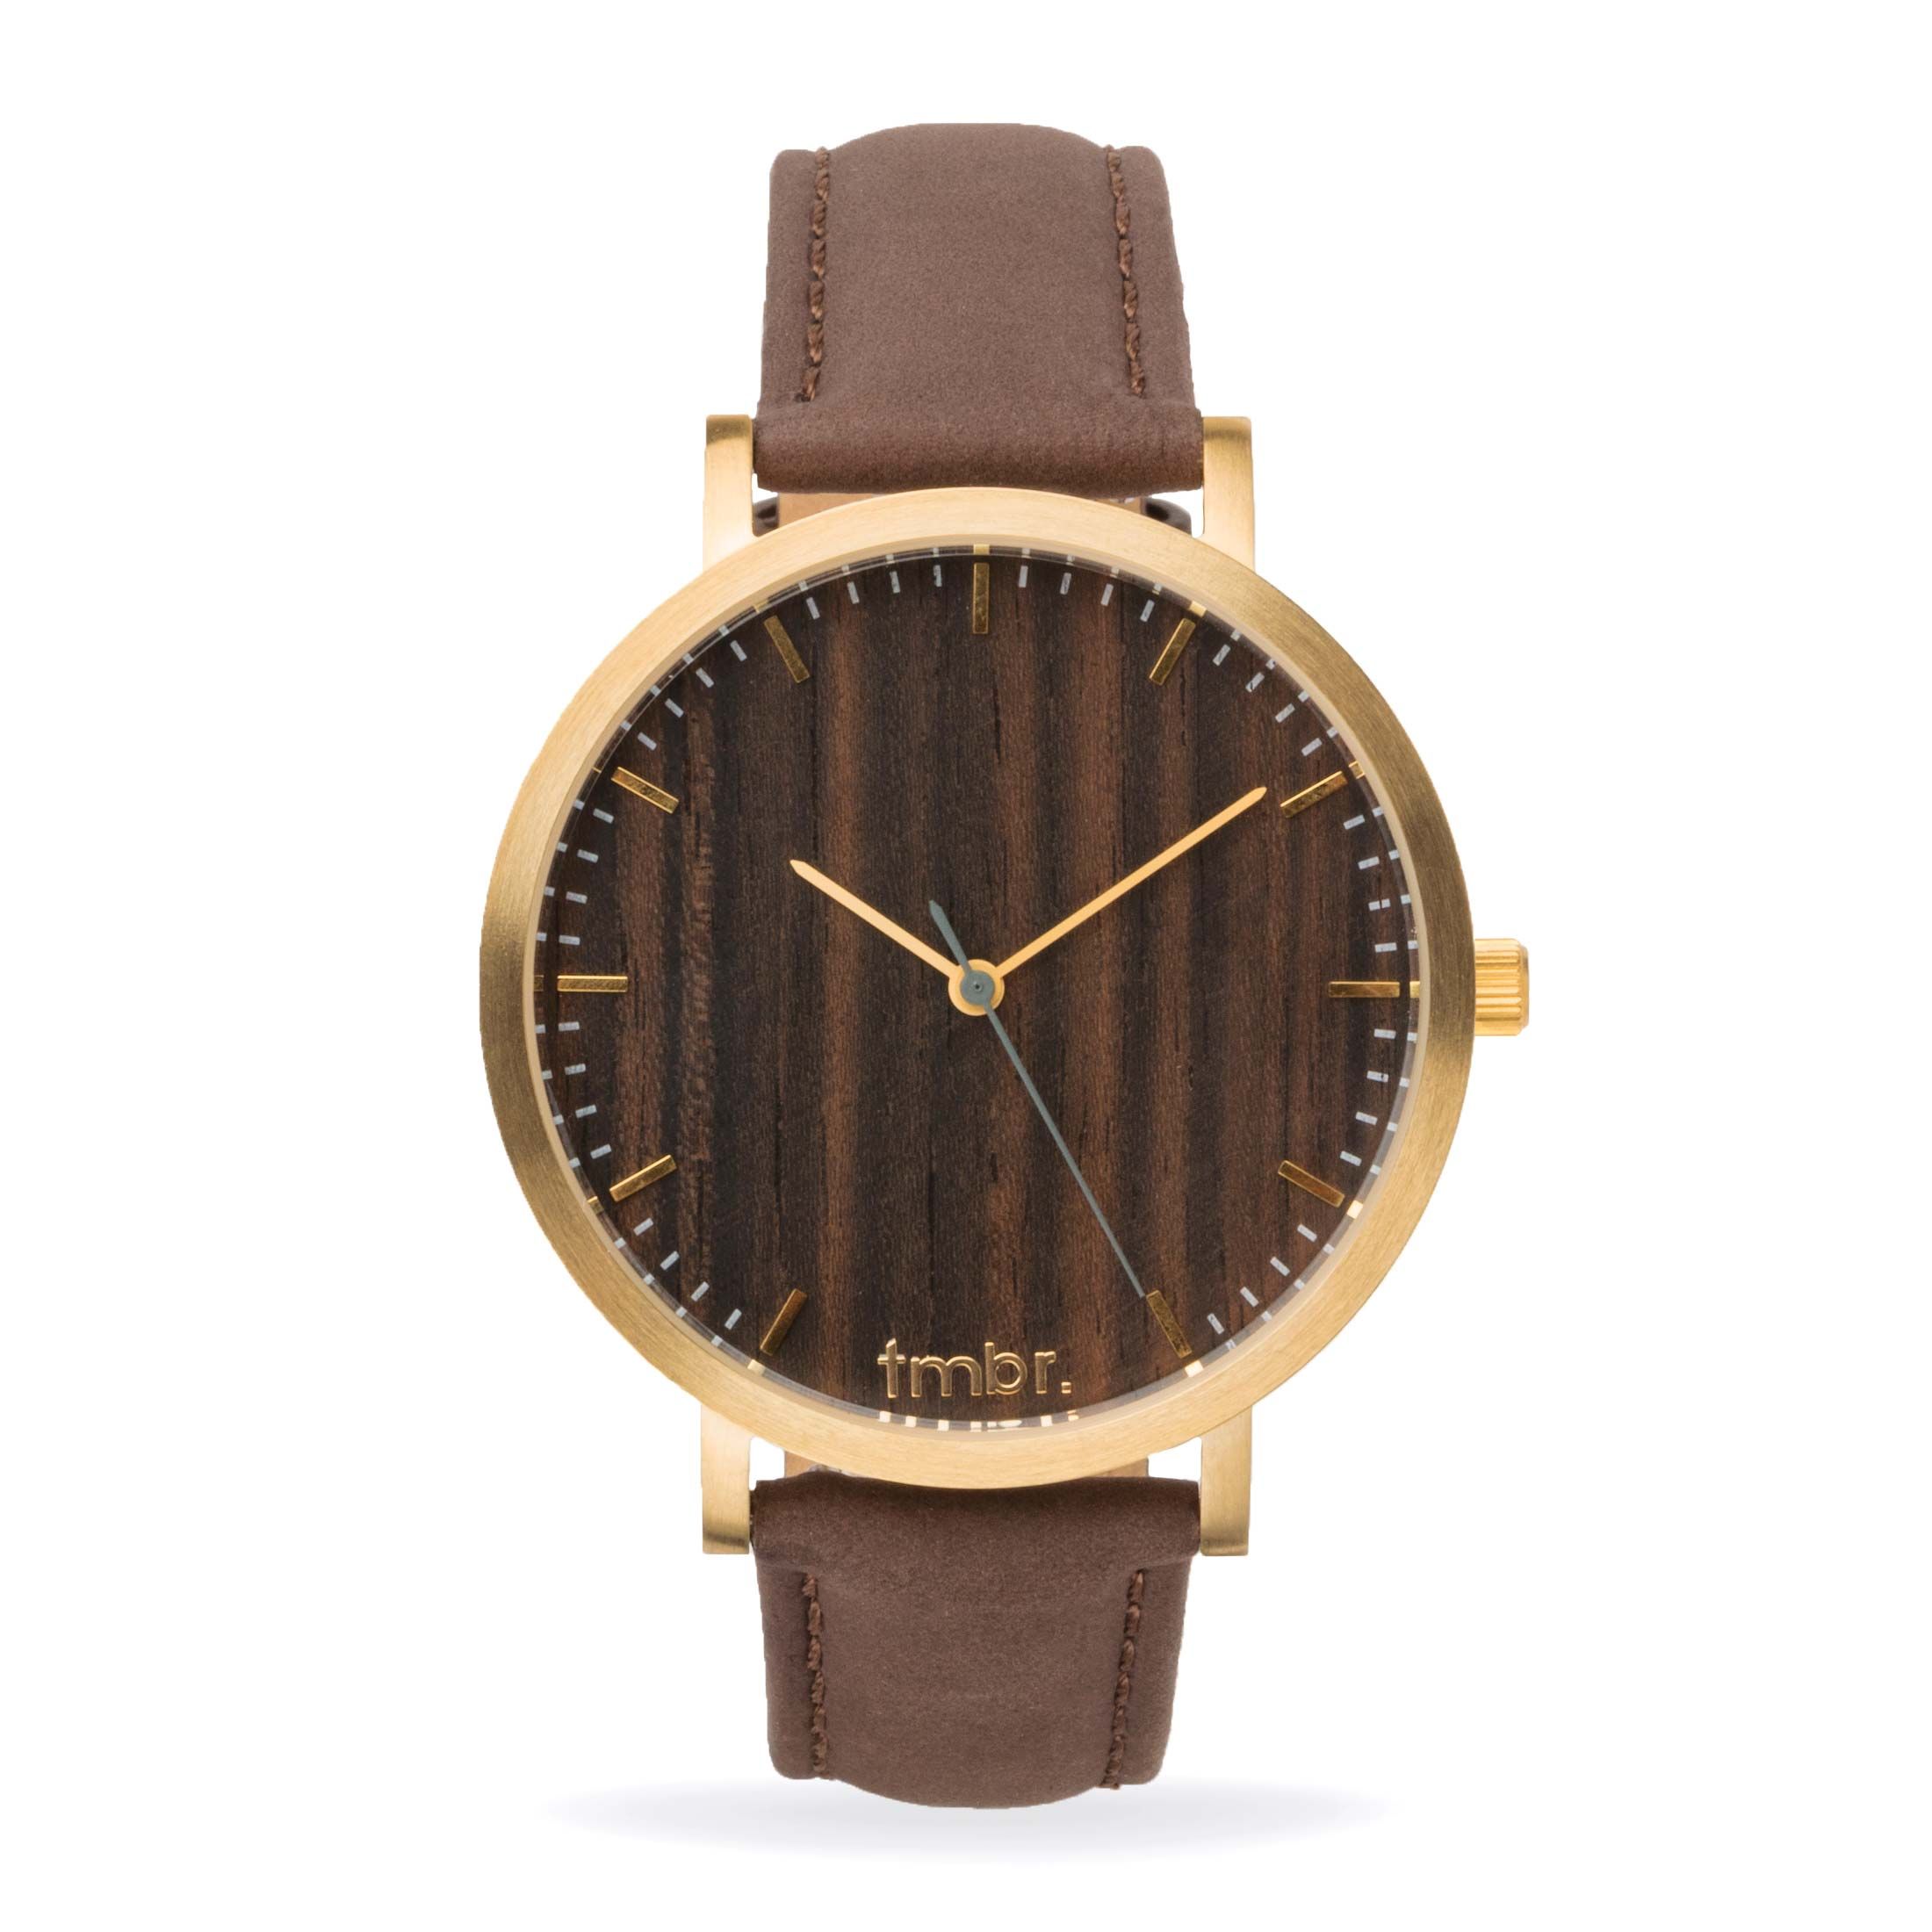 watches hand product detail made buy men custom sale quality for high wood